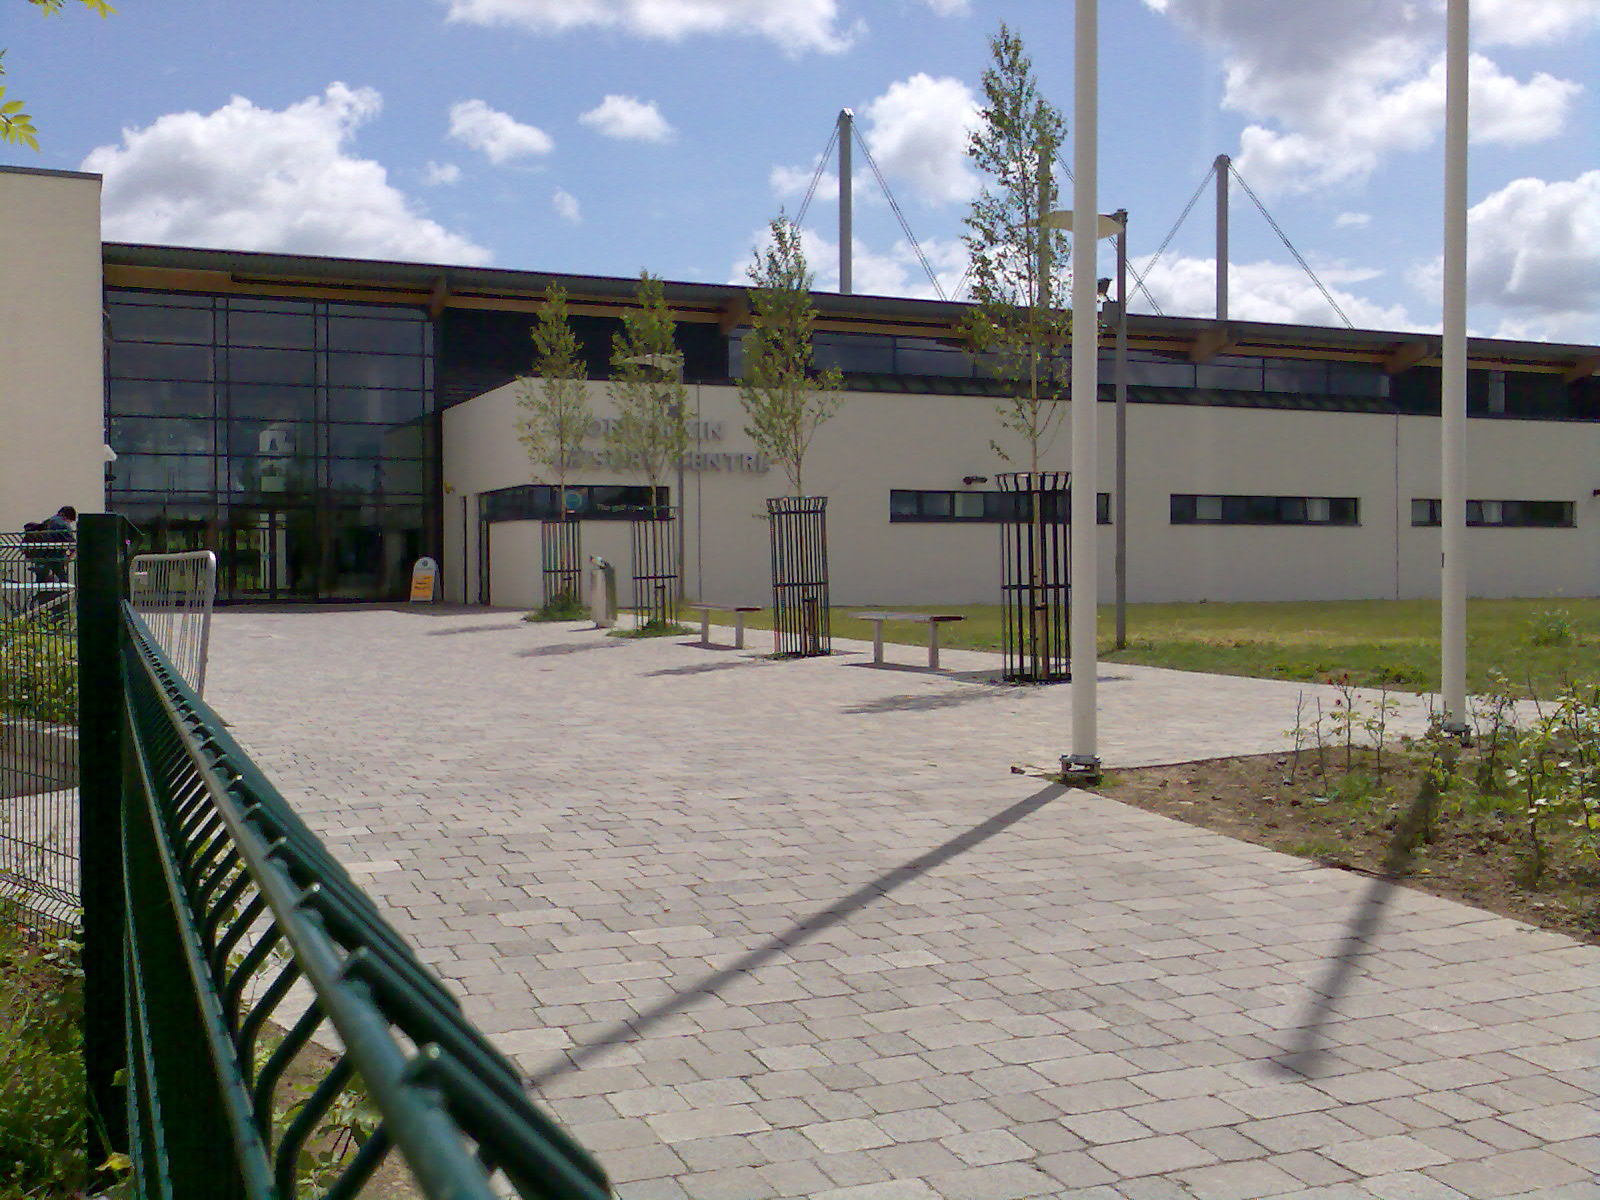 Clondalkin Leisure Centre - photo